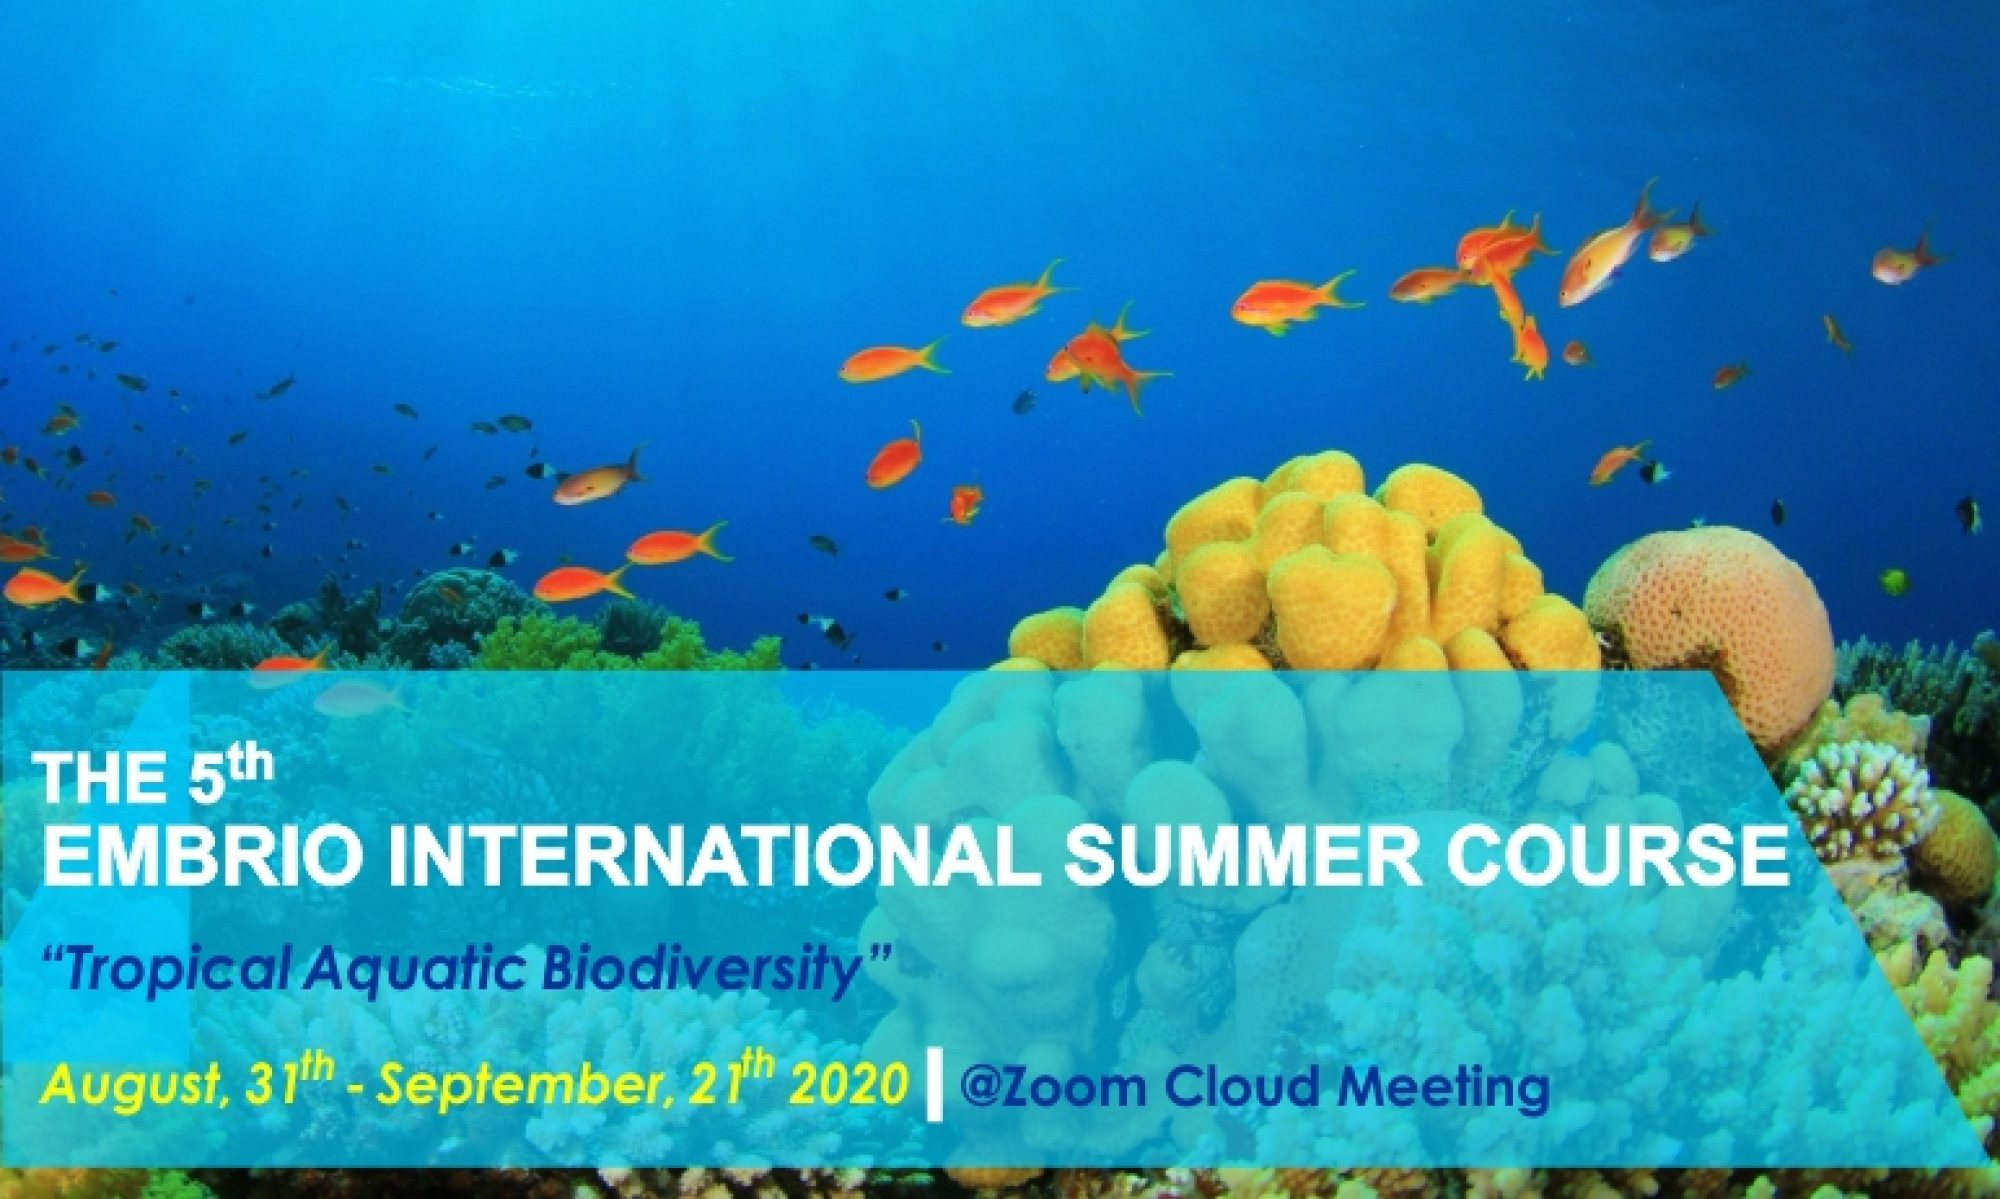 EMBRIO International Summer Course (EISC) 2020